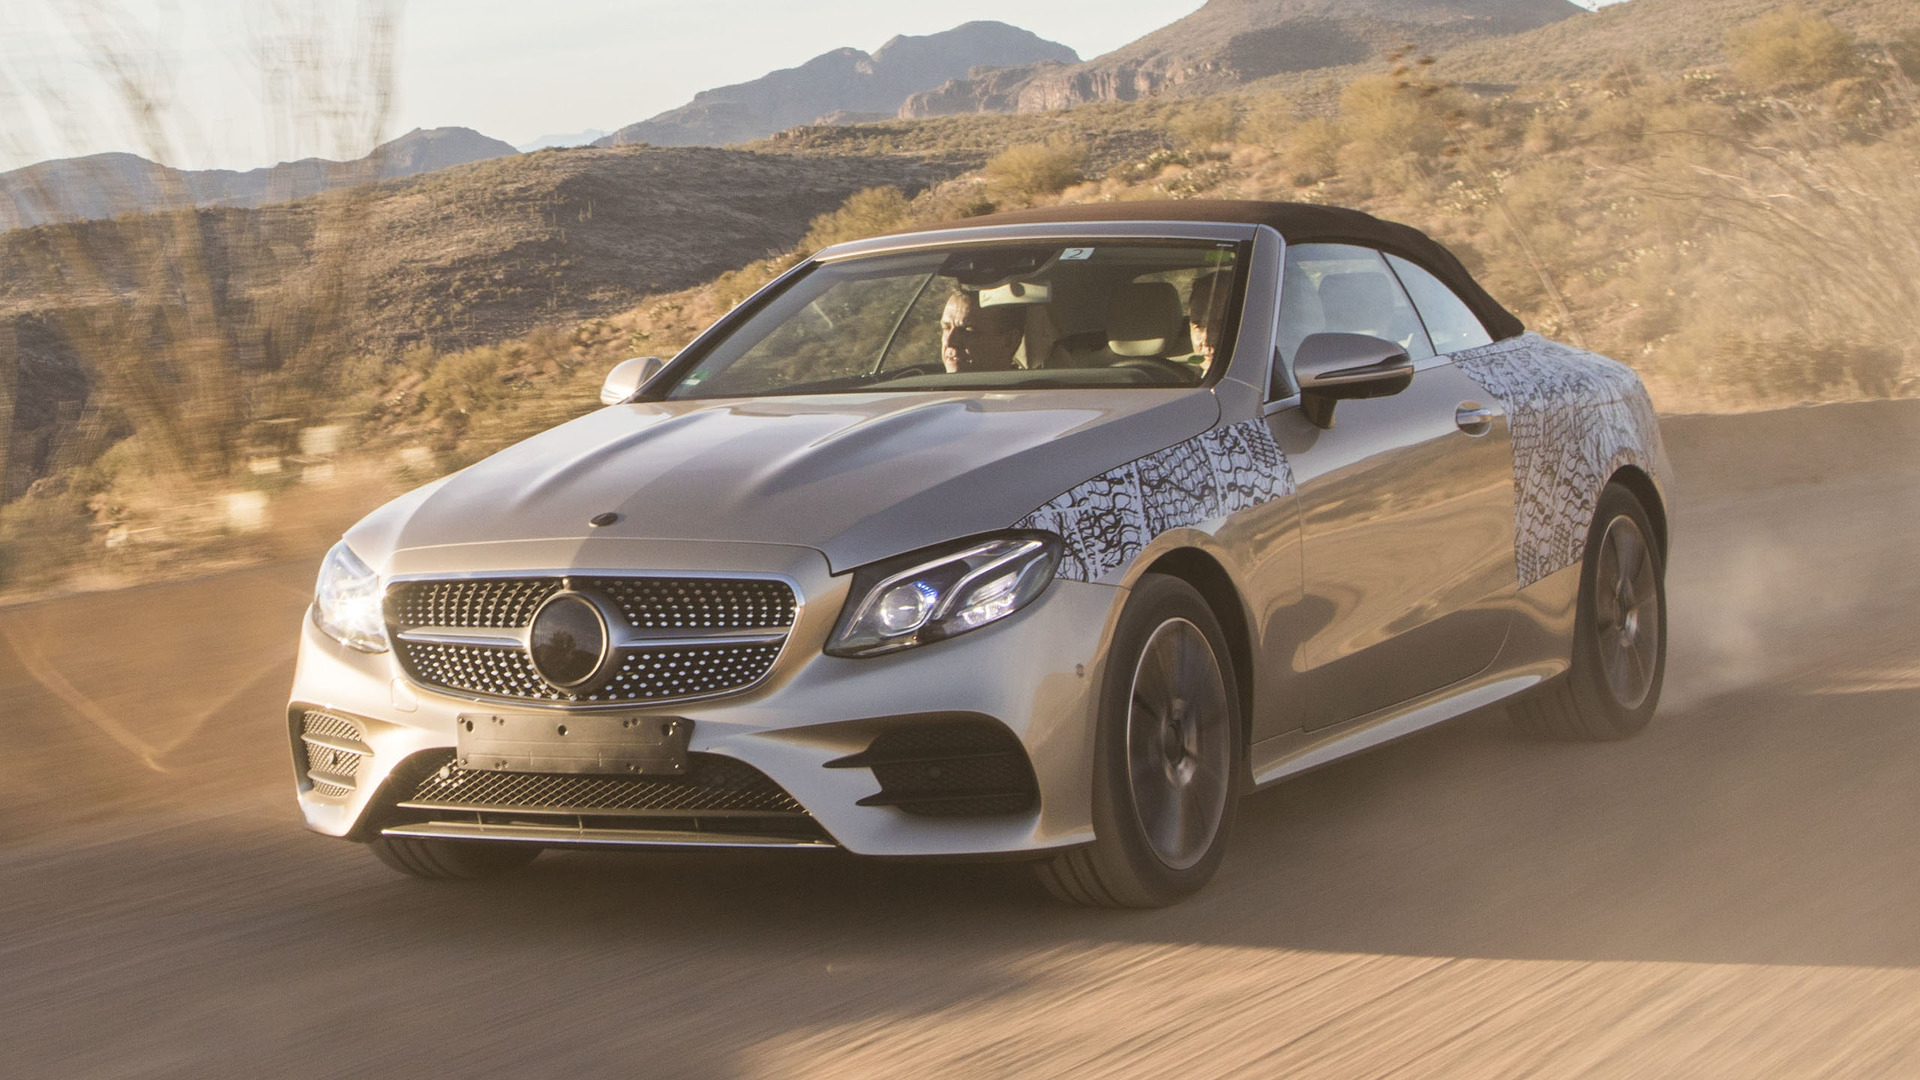 2018 Mercedes E Class Cabriolet First Ride Making of a topless beauty